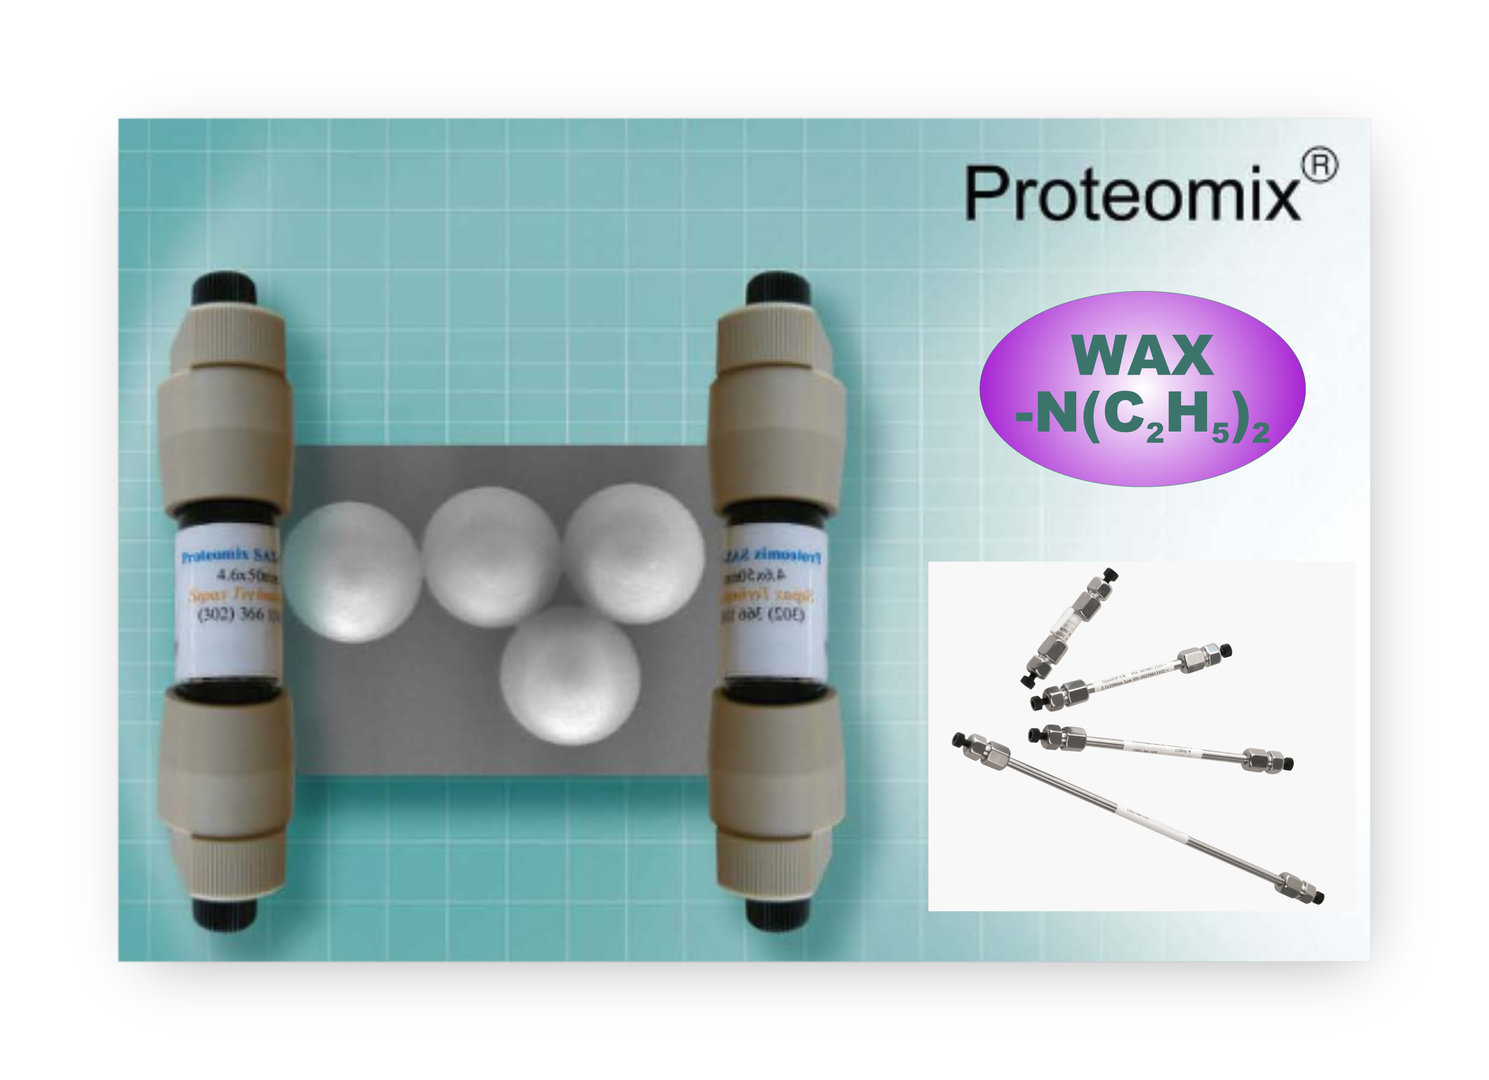 Sepax Proteomix WAX, NP5, Guard cartridge